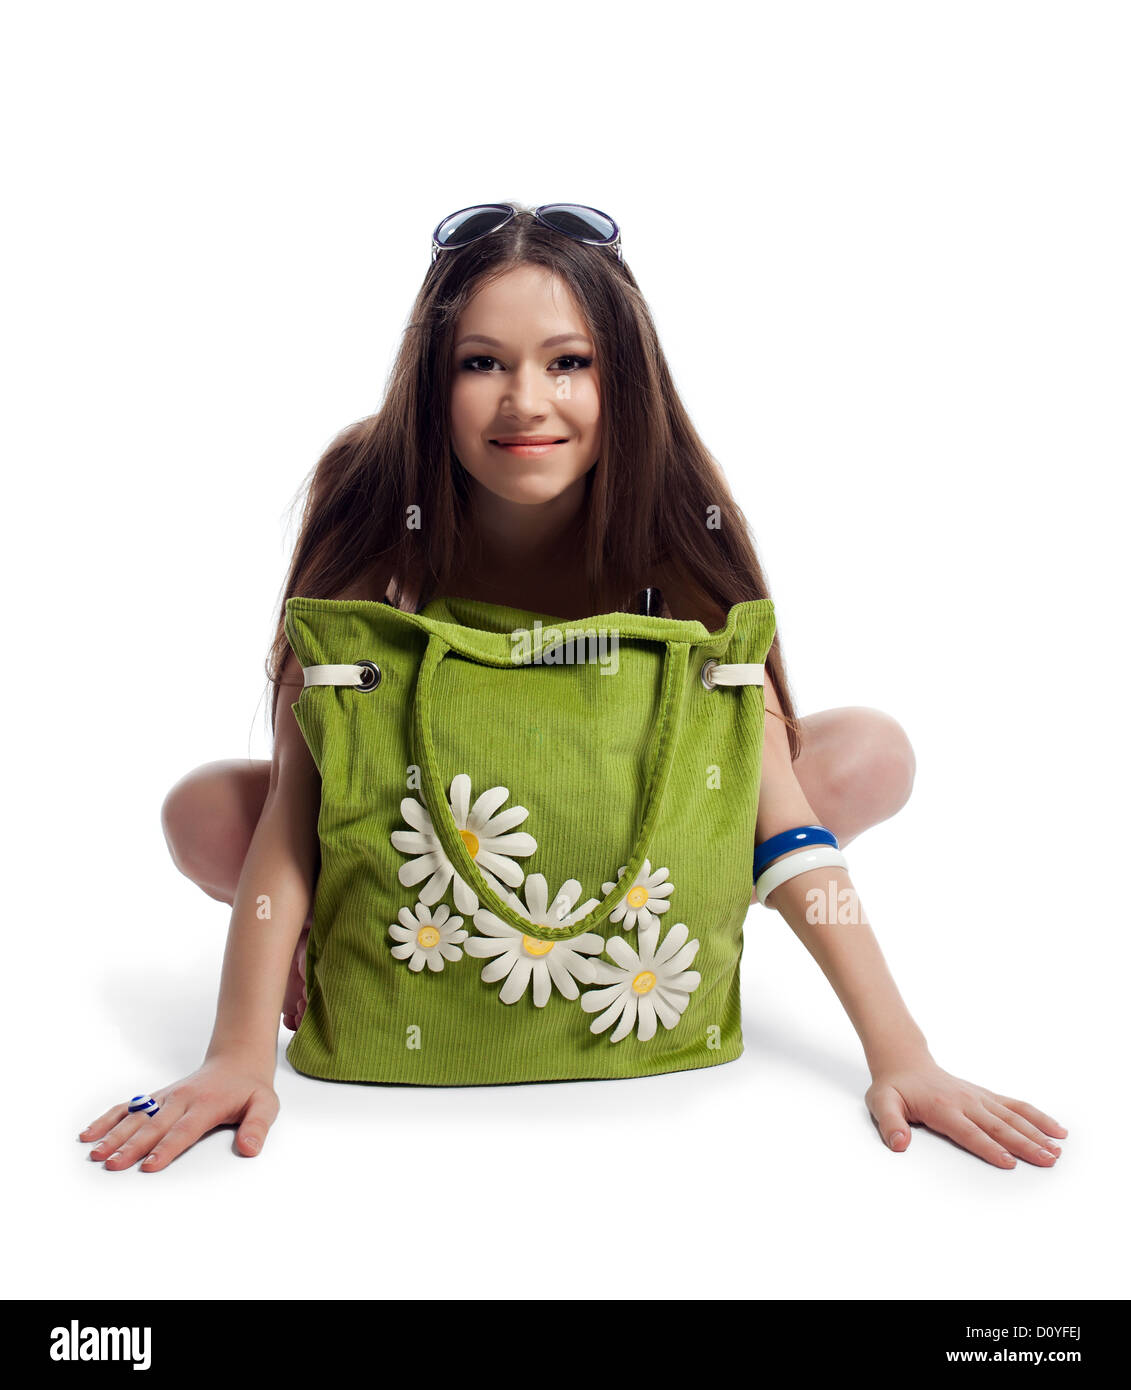 Yong woman sit with green beach bag smile isolated - Stock Image